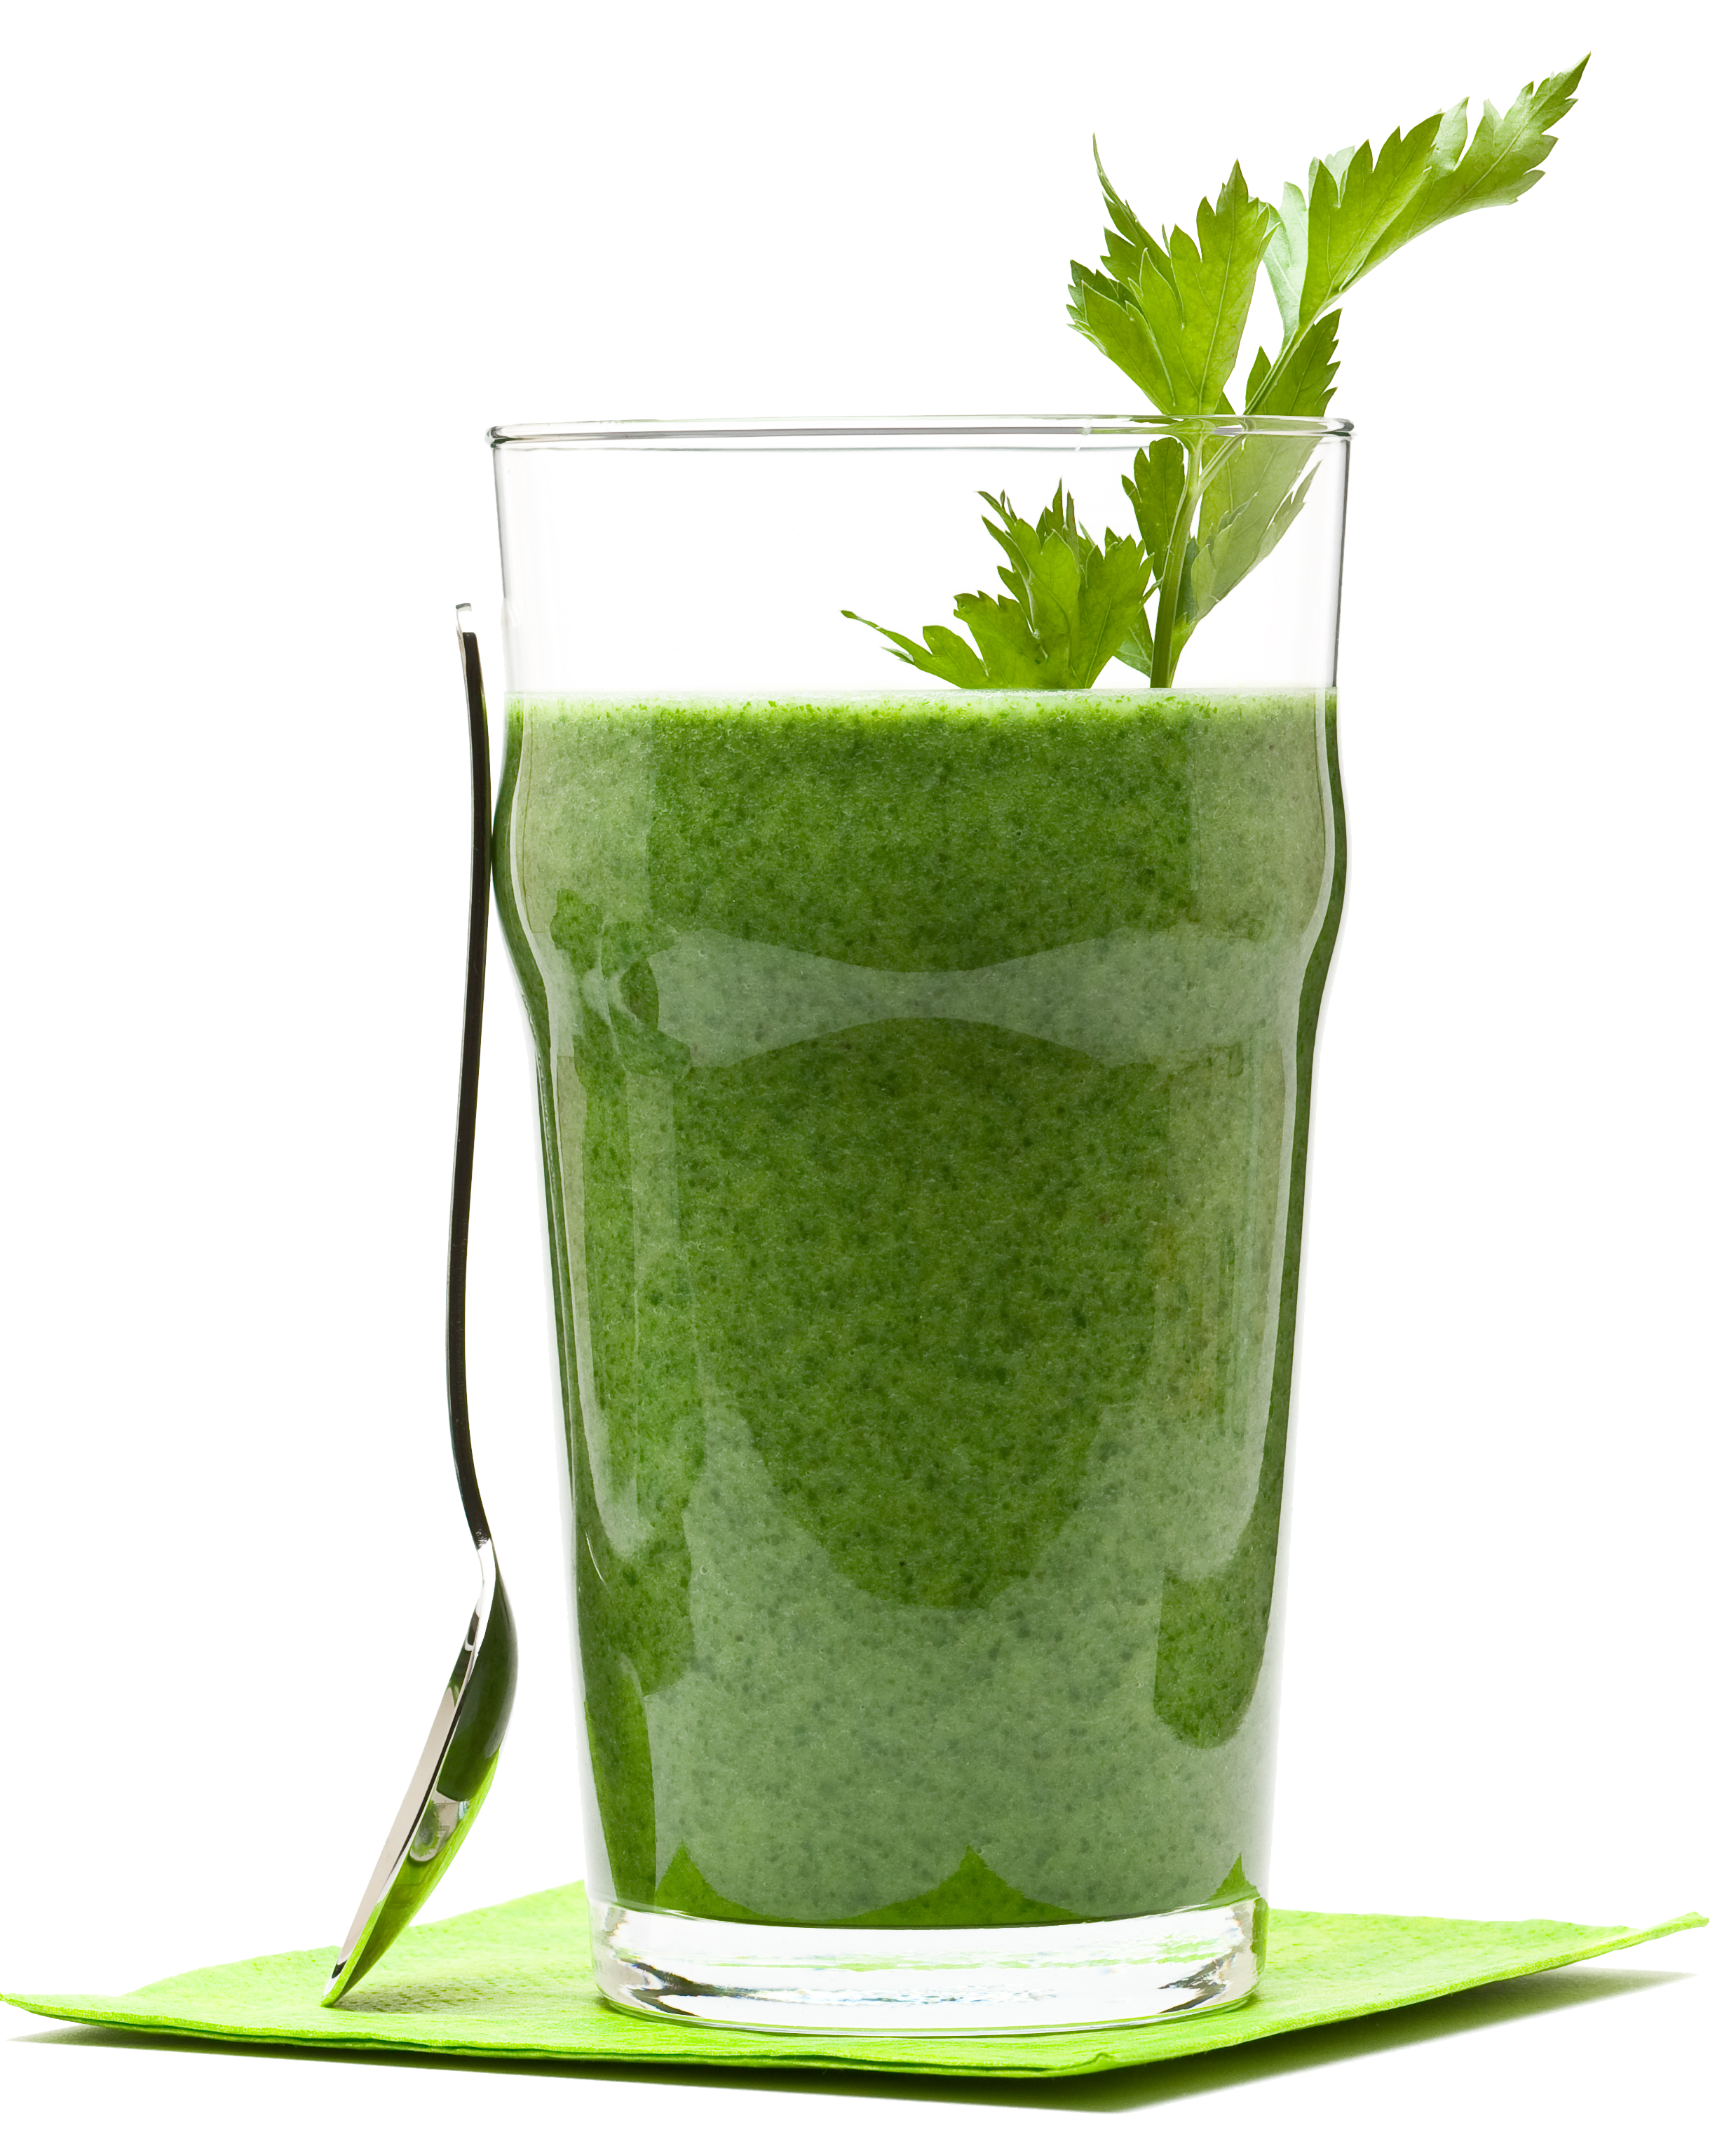 Green smoothie png. Juice liquidlab elements pinterest